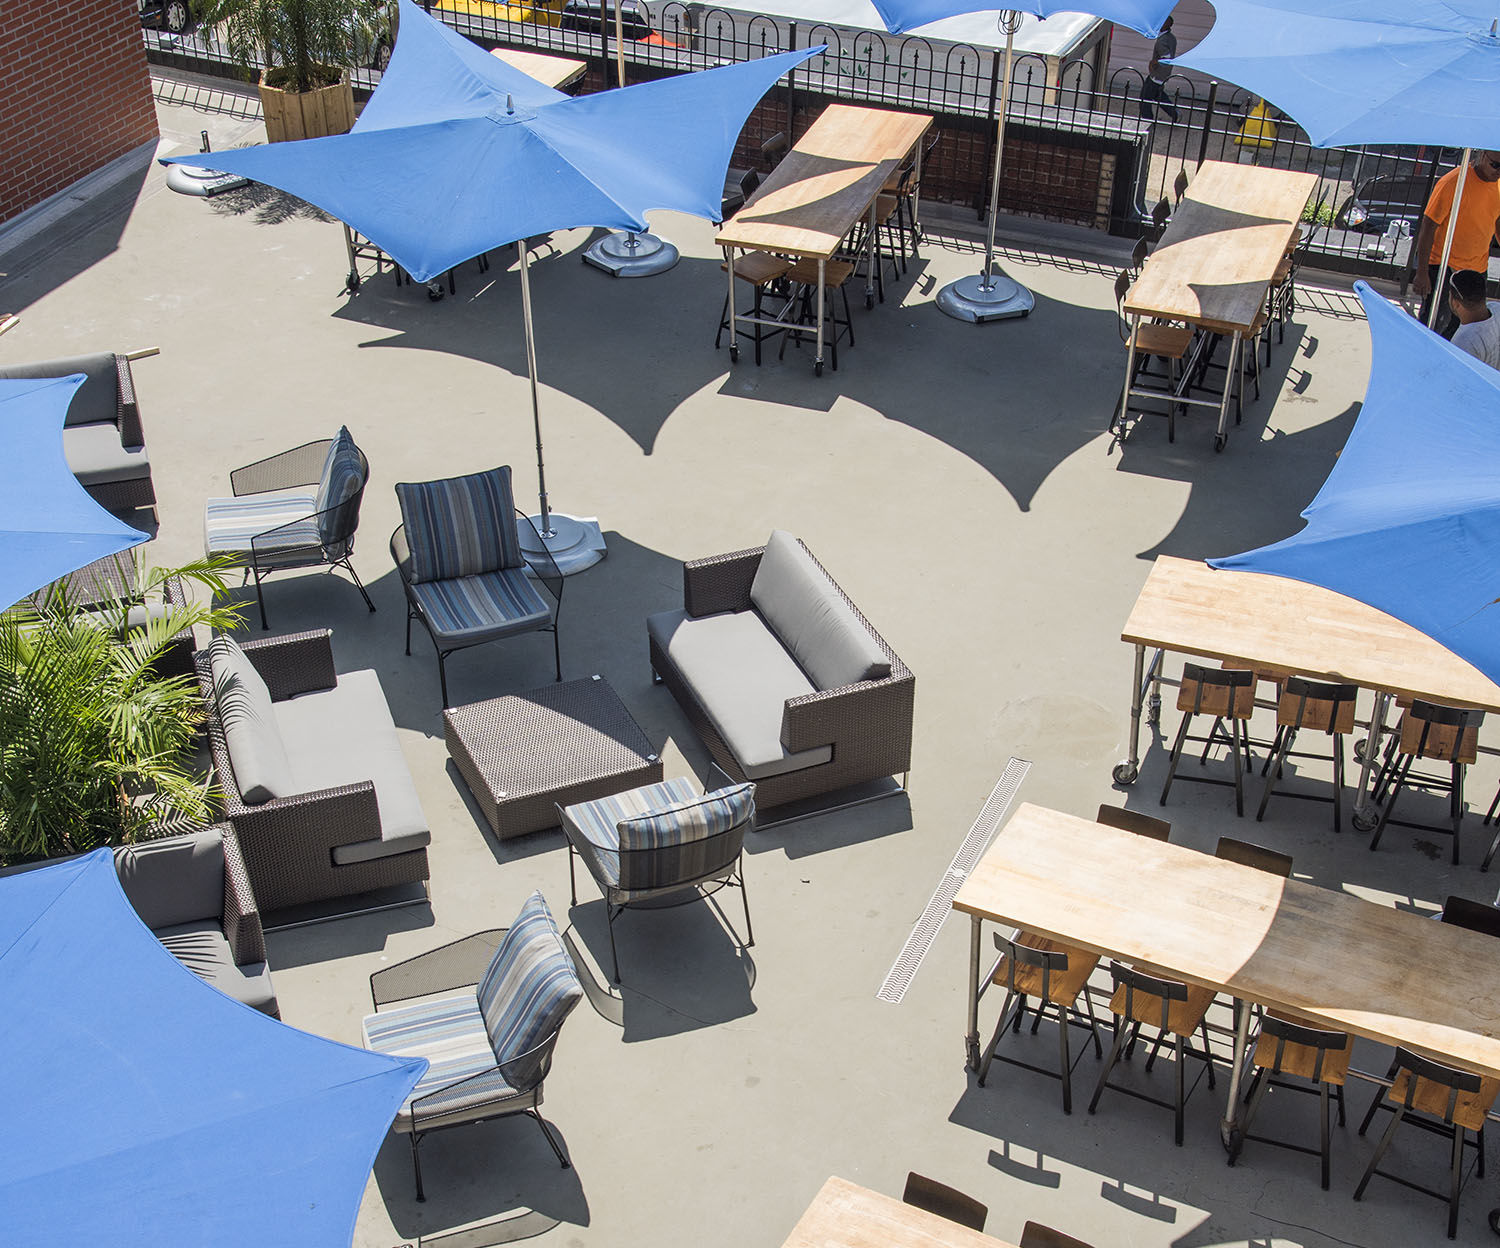 The Tavern at Ivy City is the outdoor space to whack away at steamed crabs, peel and eat the shrimp and crack into a fresh Maine lobster. Ivy City's first neighborhood restaurant, they smoke their own seafood, and serve the freshest local and seasonal fish available. Really, their parent company is Profish one of the biggest seafood purveyors on the East Coast. (Courtesy The Tavern at Ivy City)